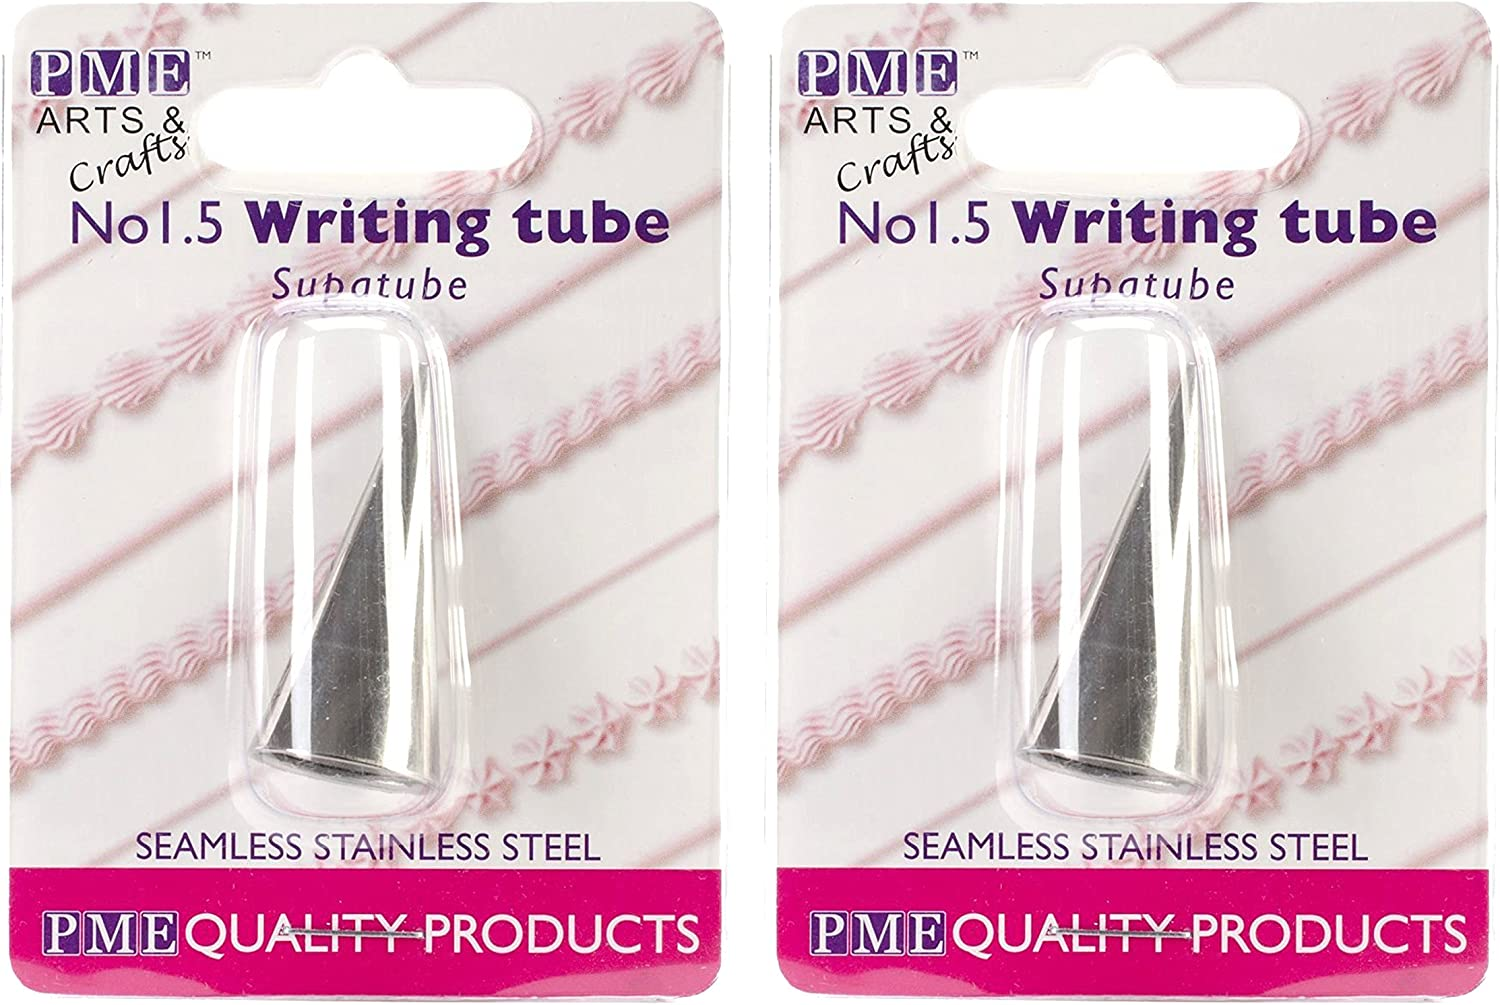 PME Seamless Stainless Steel Supatube, Writer No. 1.5 (Pack of 2)